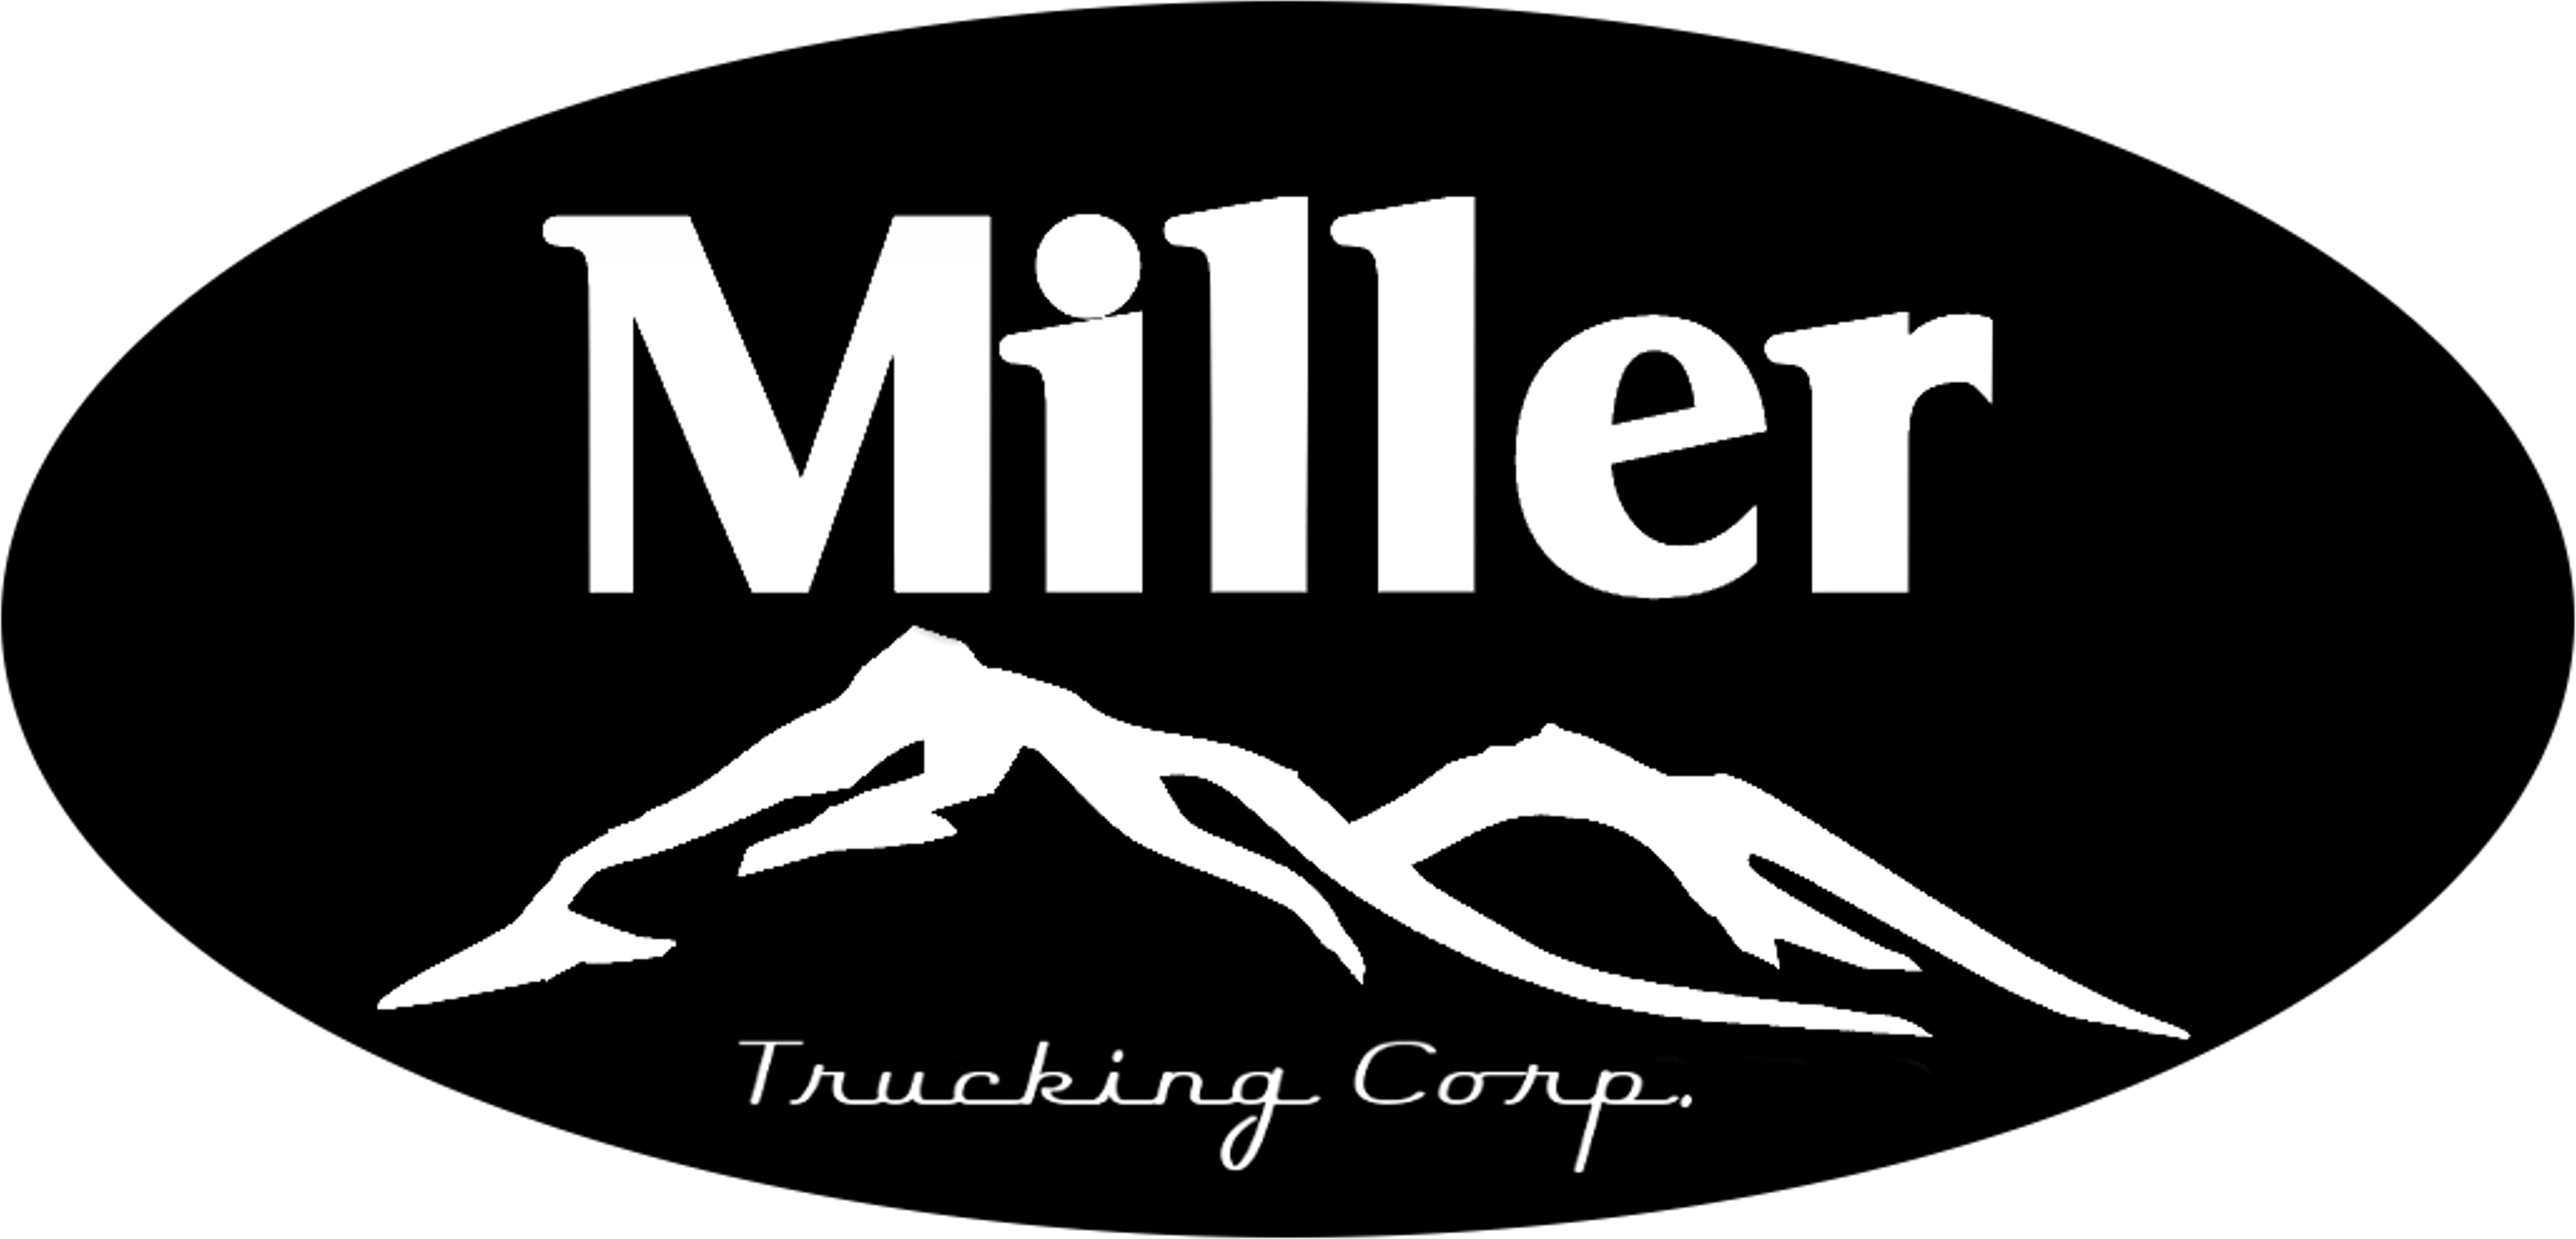 Miller Trucking Corpoation